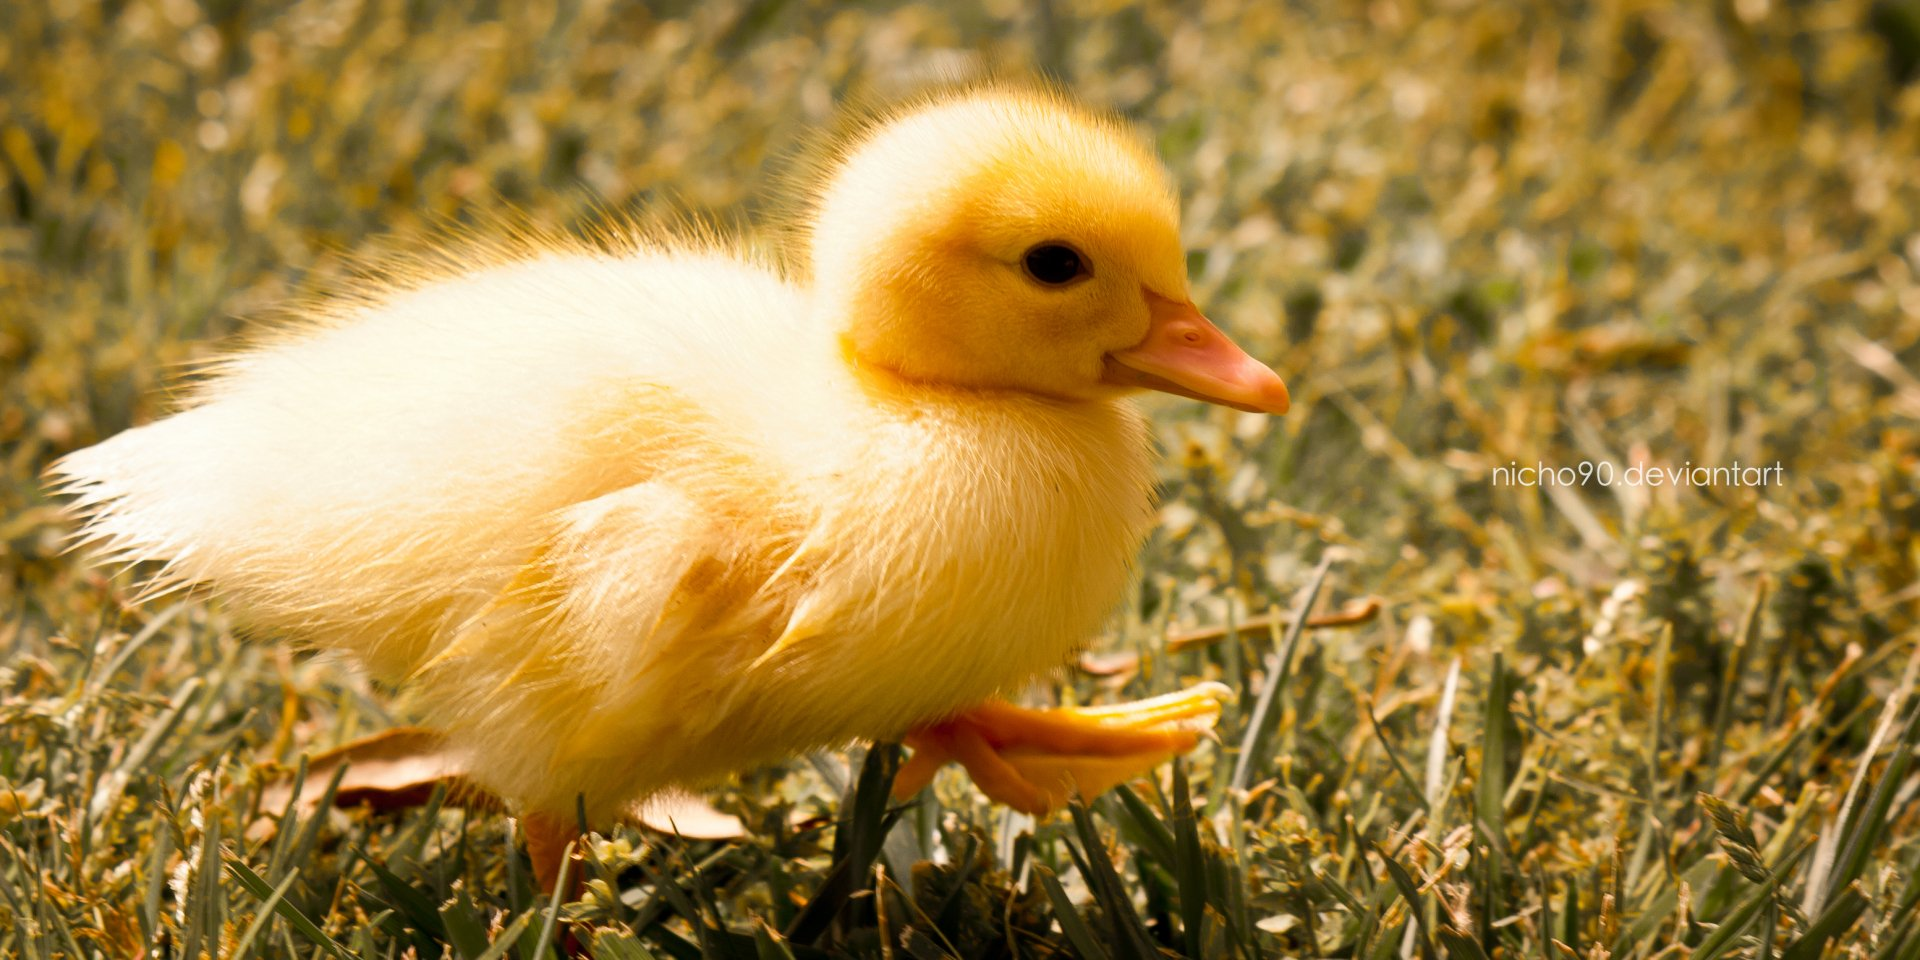 Cute Meme Wallpapers Duckling Full Hd Wallpaper And Background Image